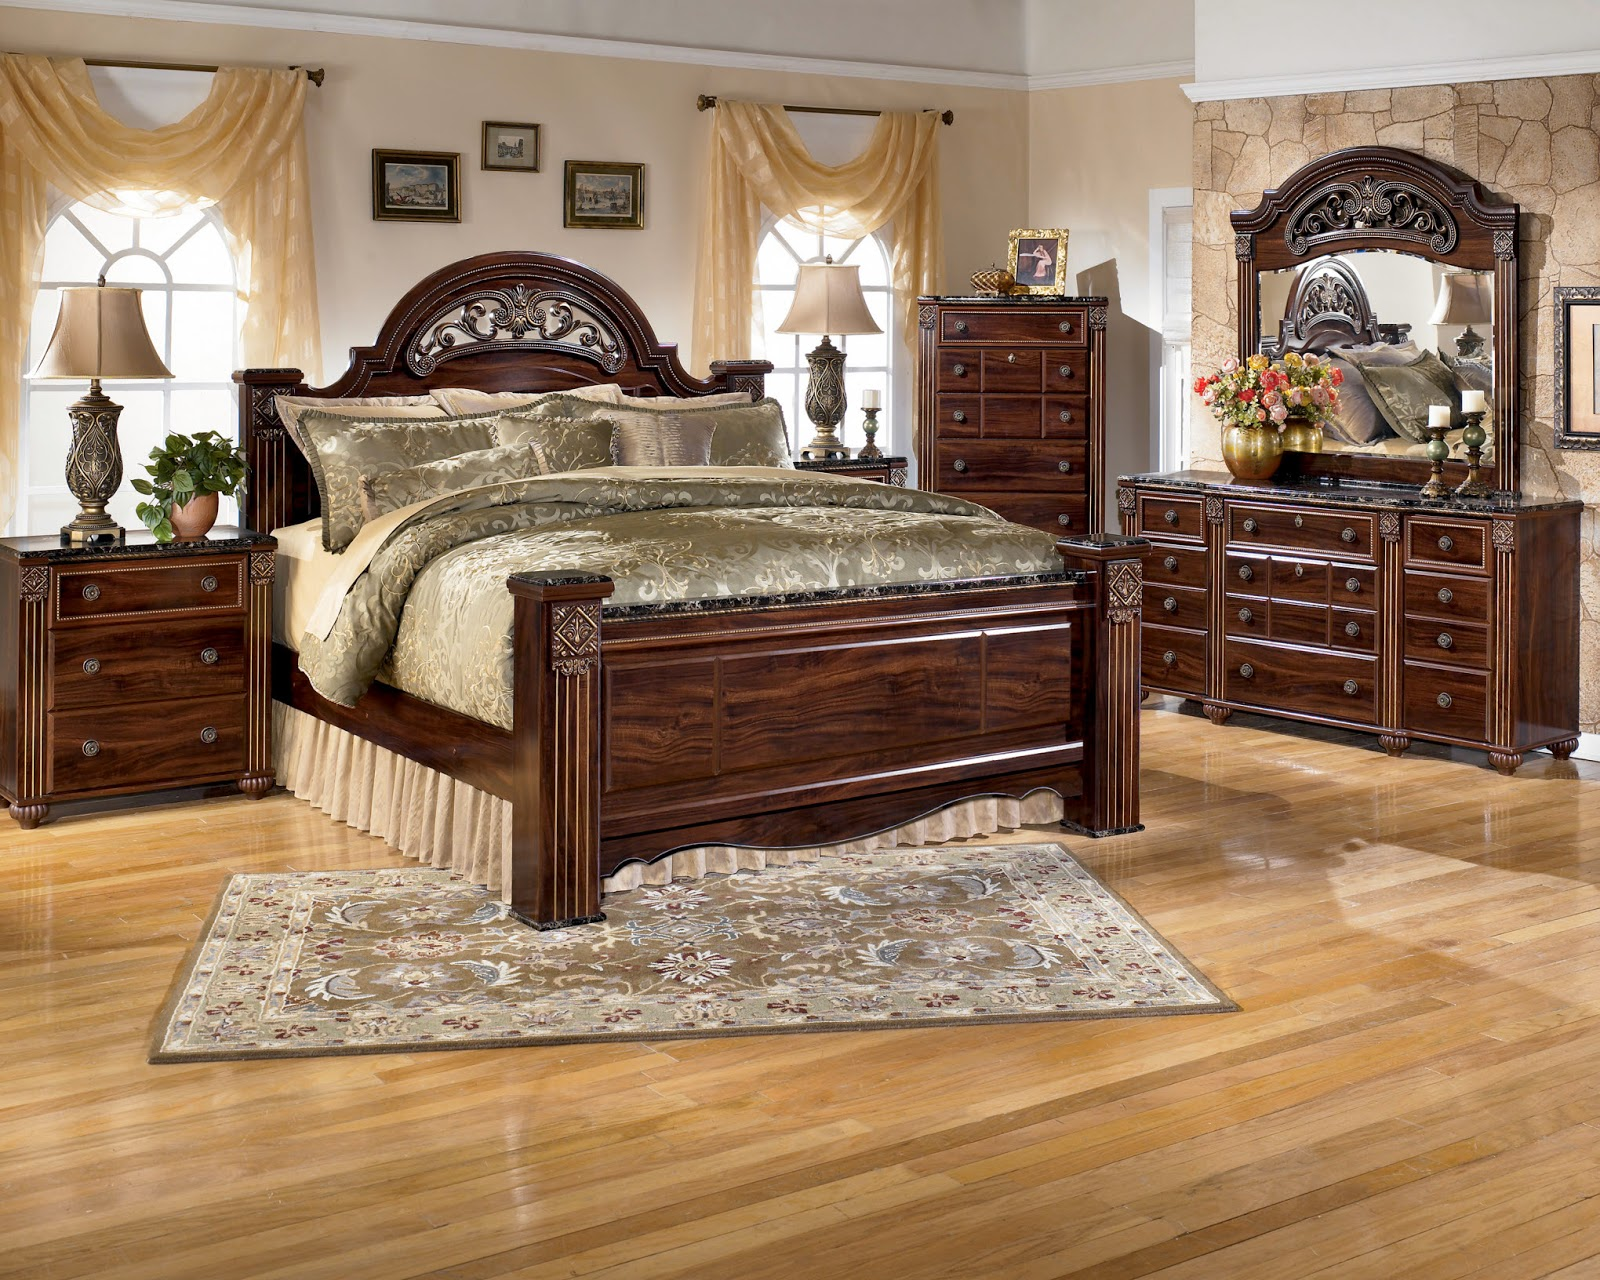 Ashley furniture bedroom sets on sale bedroom furniture for Furniture bedroom